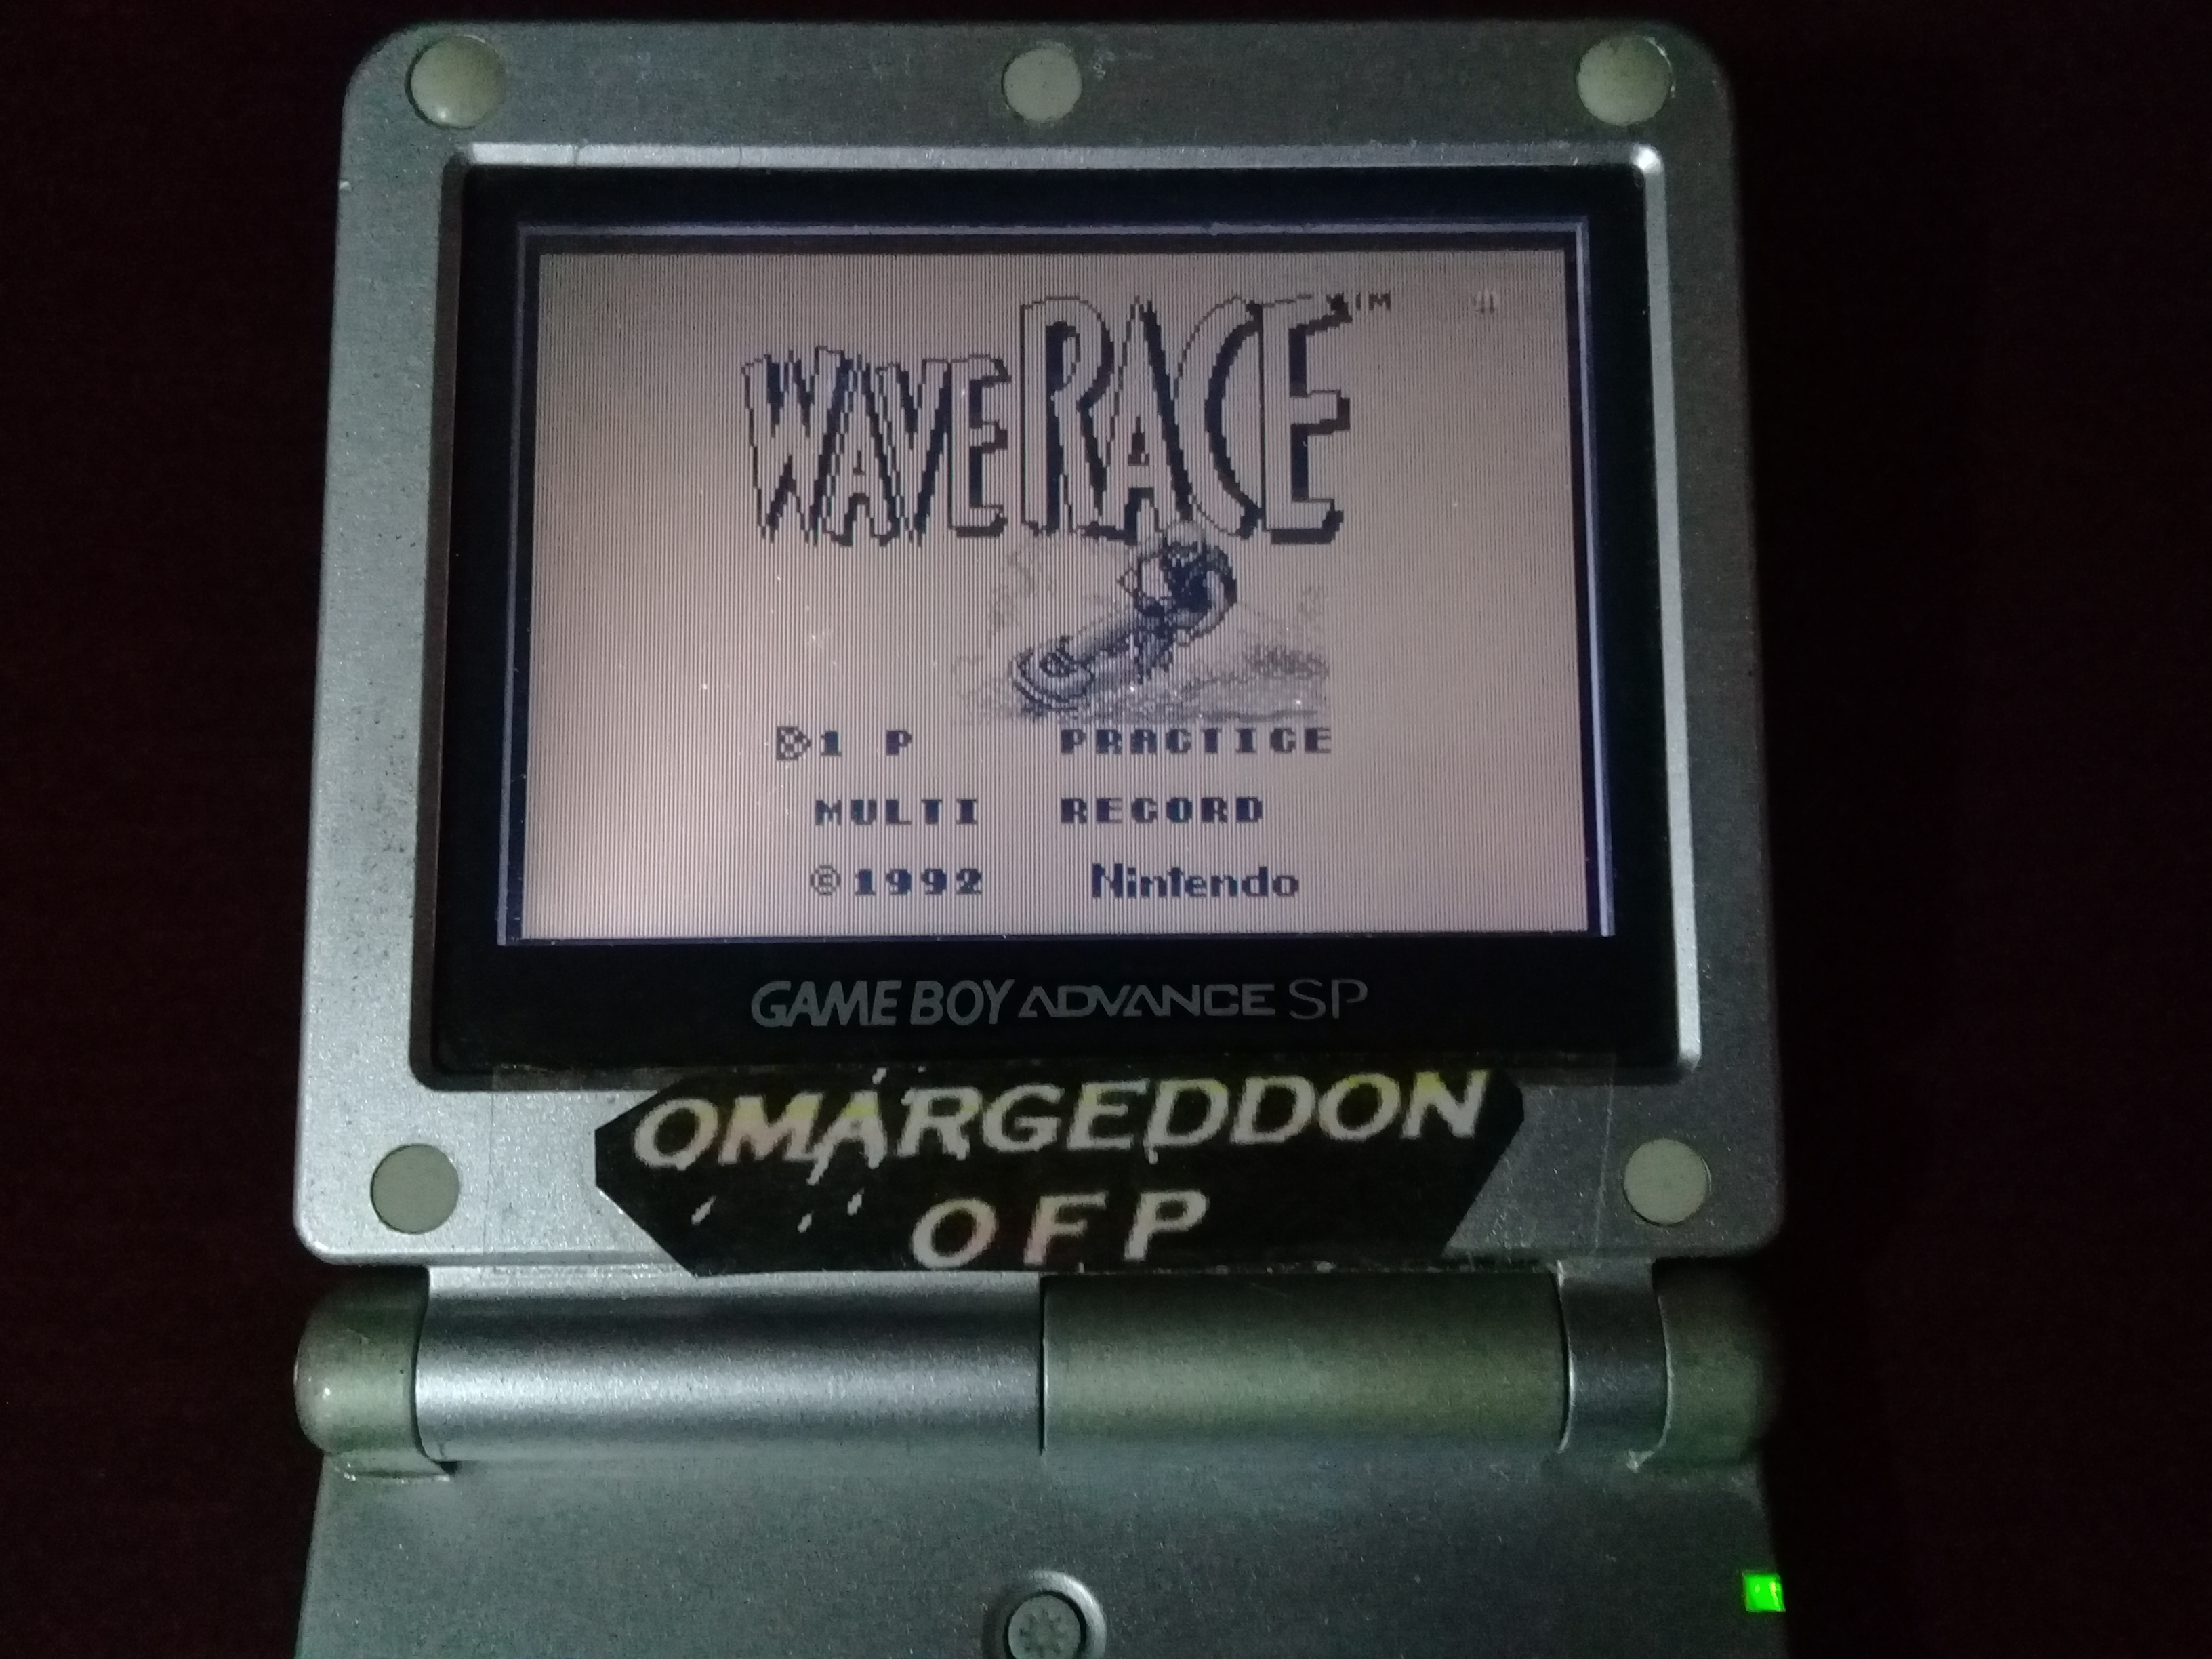 omargeddon: Wave Race: Circuit 1: Bahamas [550cc][Total Time] (Game Boy) 0:00:36.22 points on 2019-04-16 14:11:18